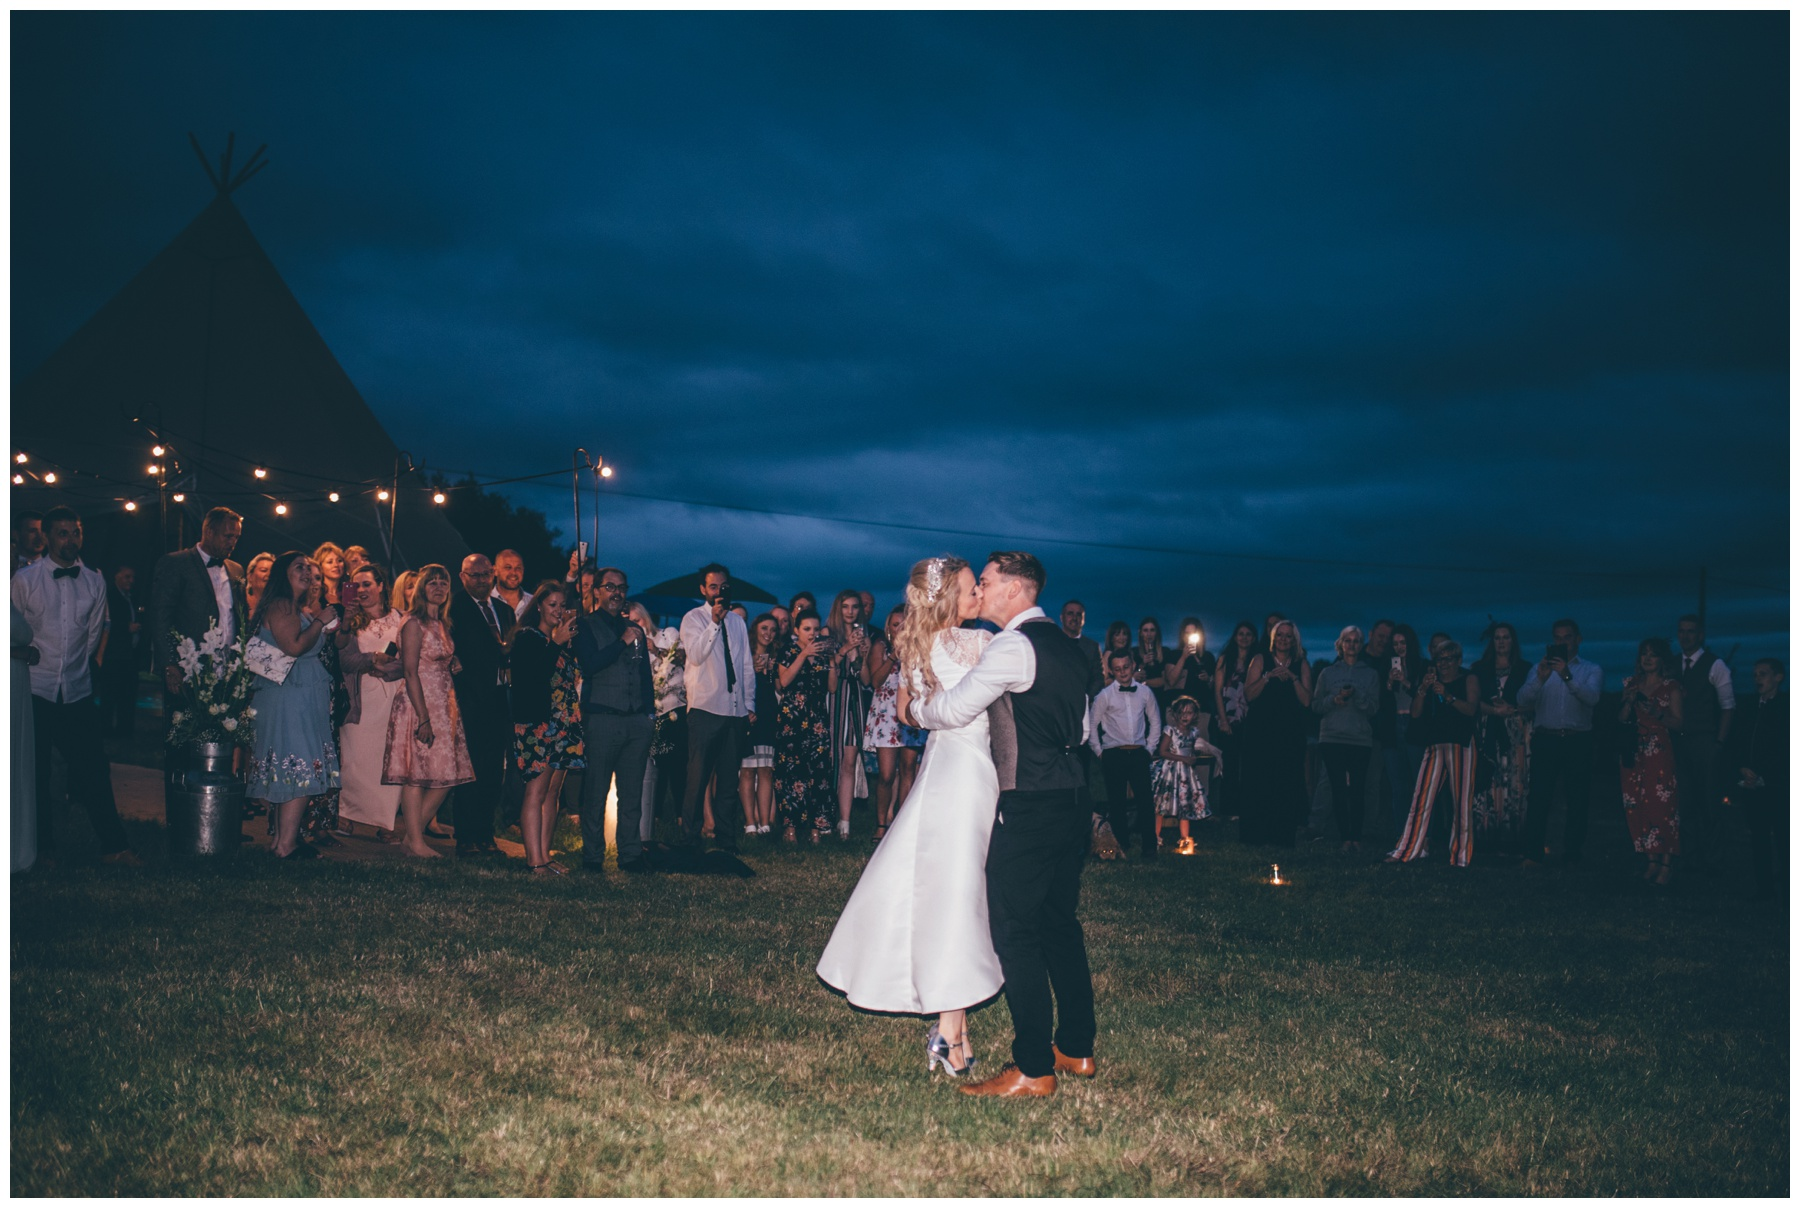 The most gorgeous moonlit First Dance at tipi wedding in Staffordshire.